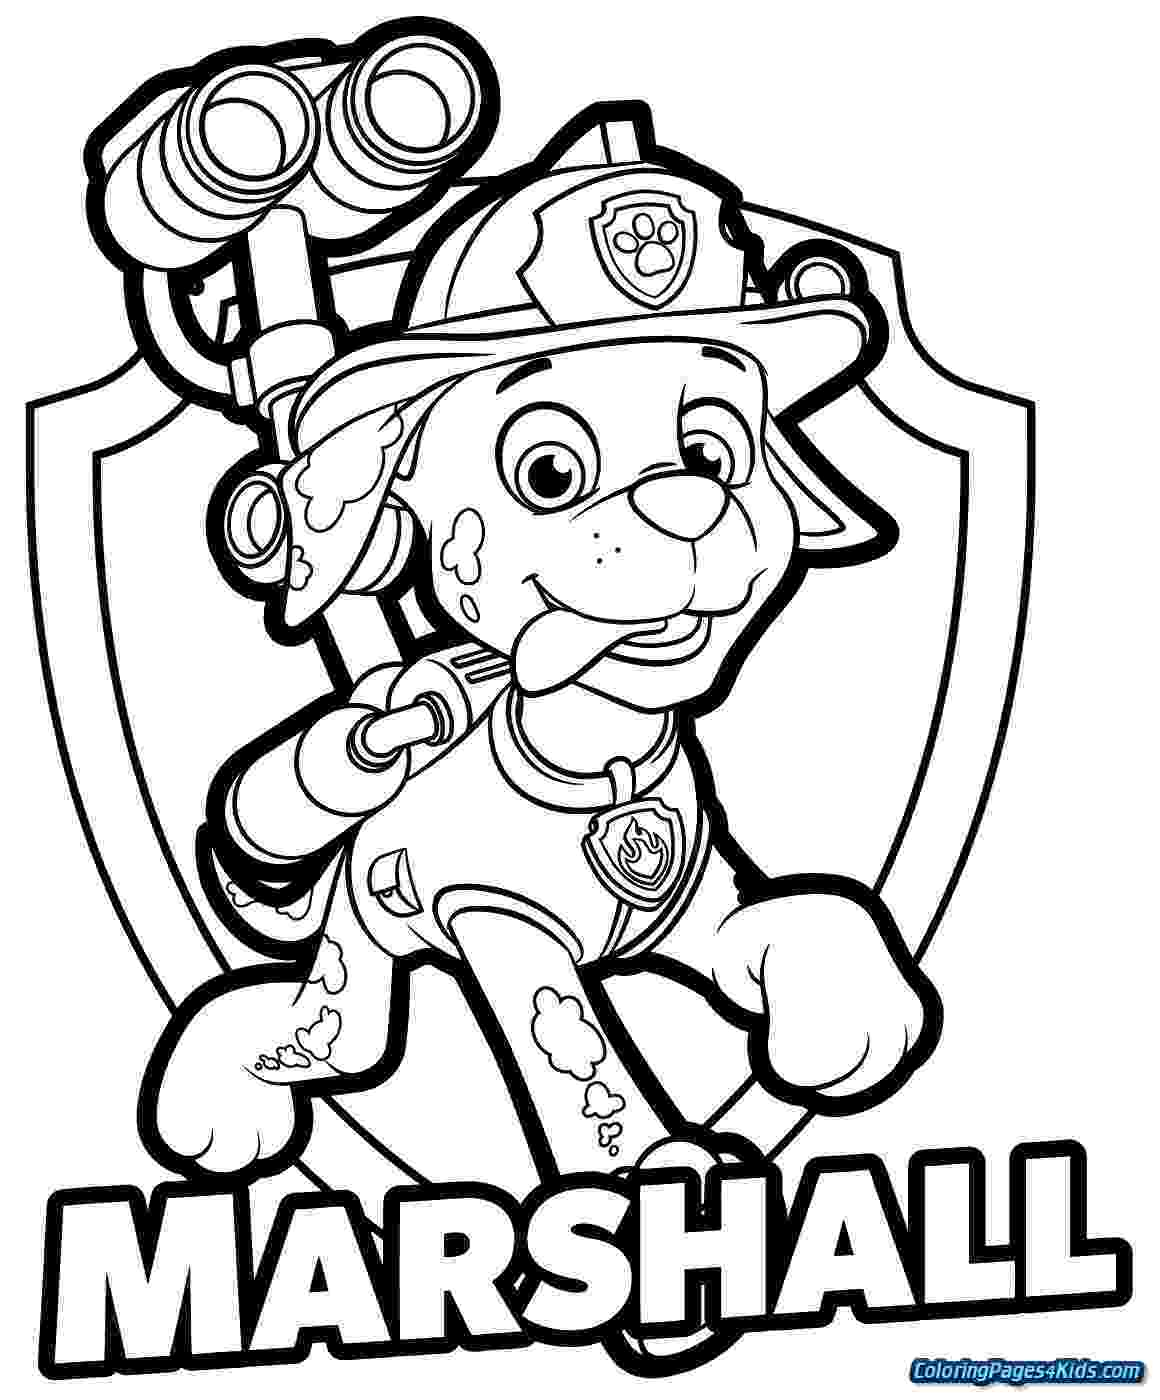 paw patrol coloring pages paw patrol coloring pages print and colorcom paw pages patrol coloring